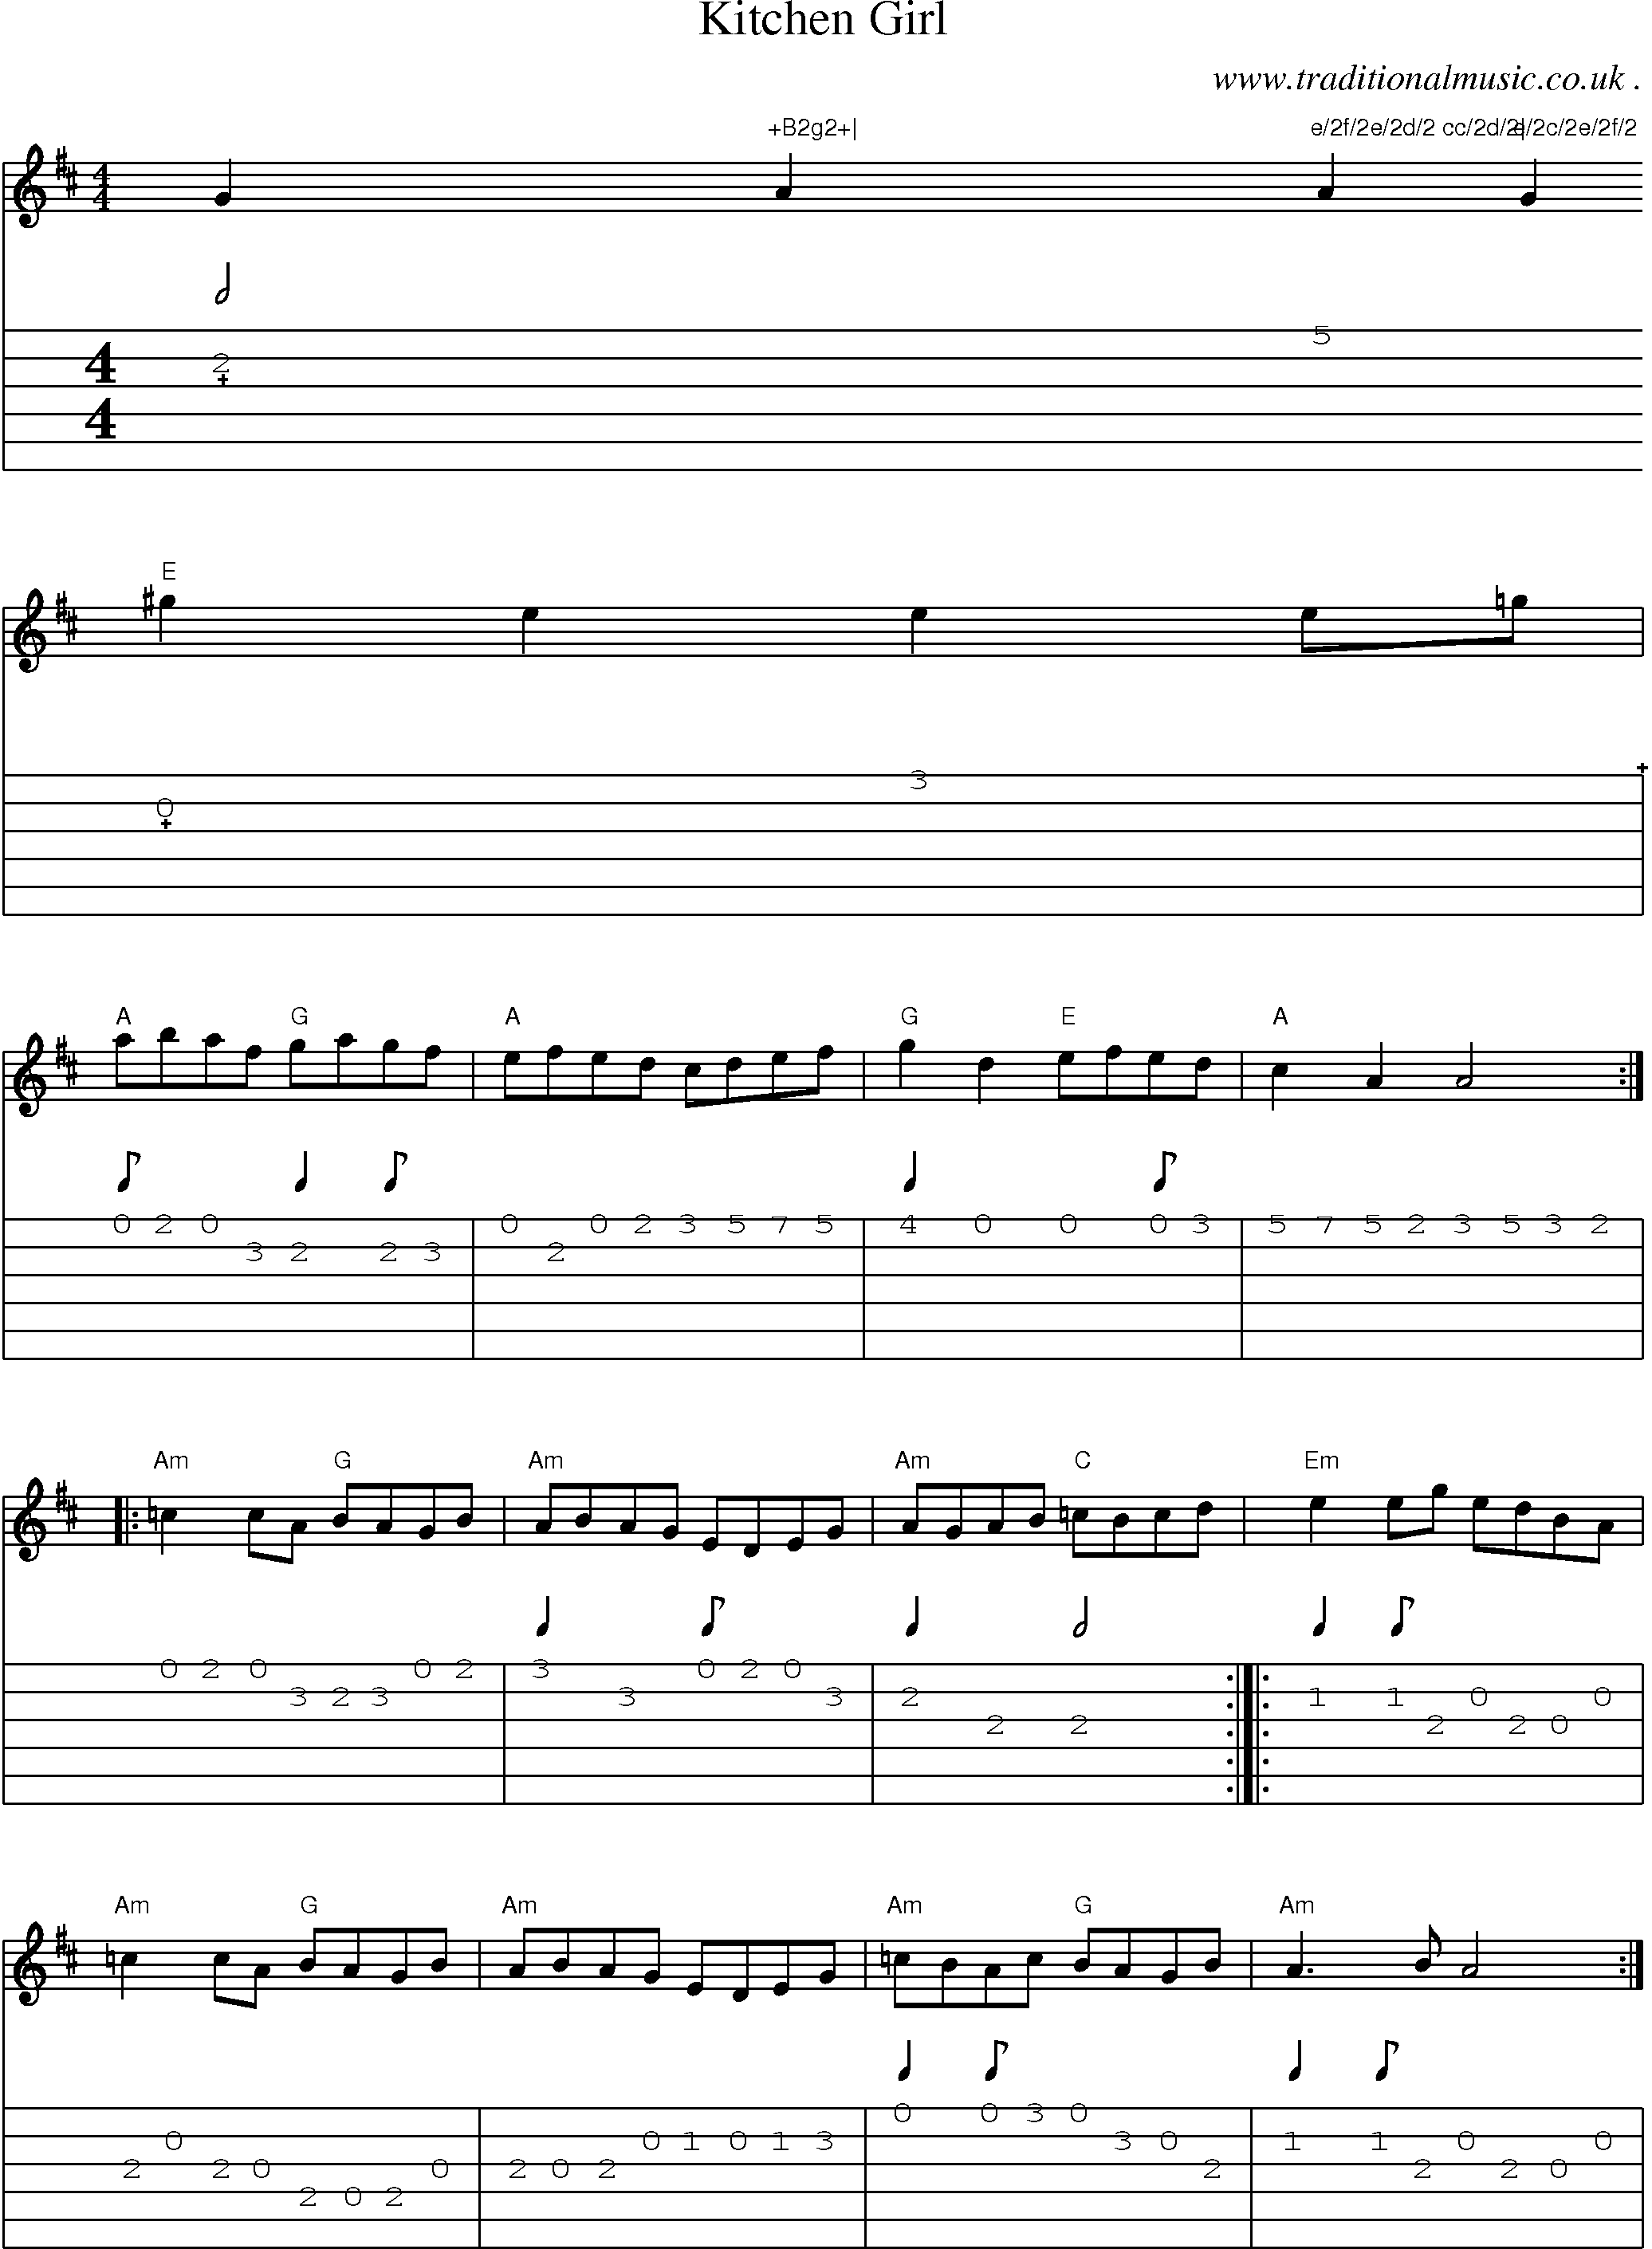 Music Score And Guitar Tabs For Kitchen Girl